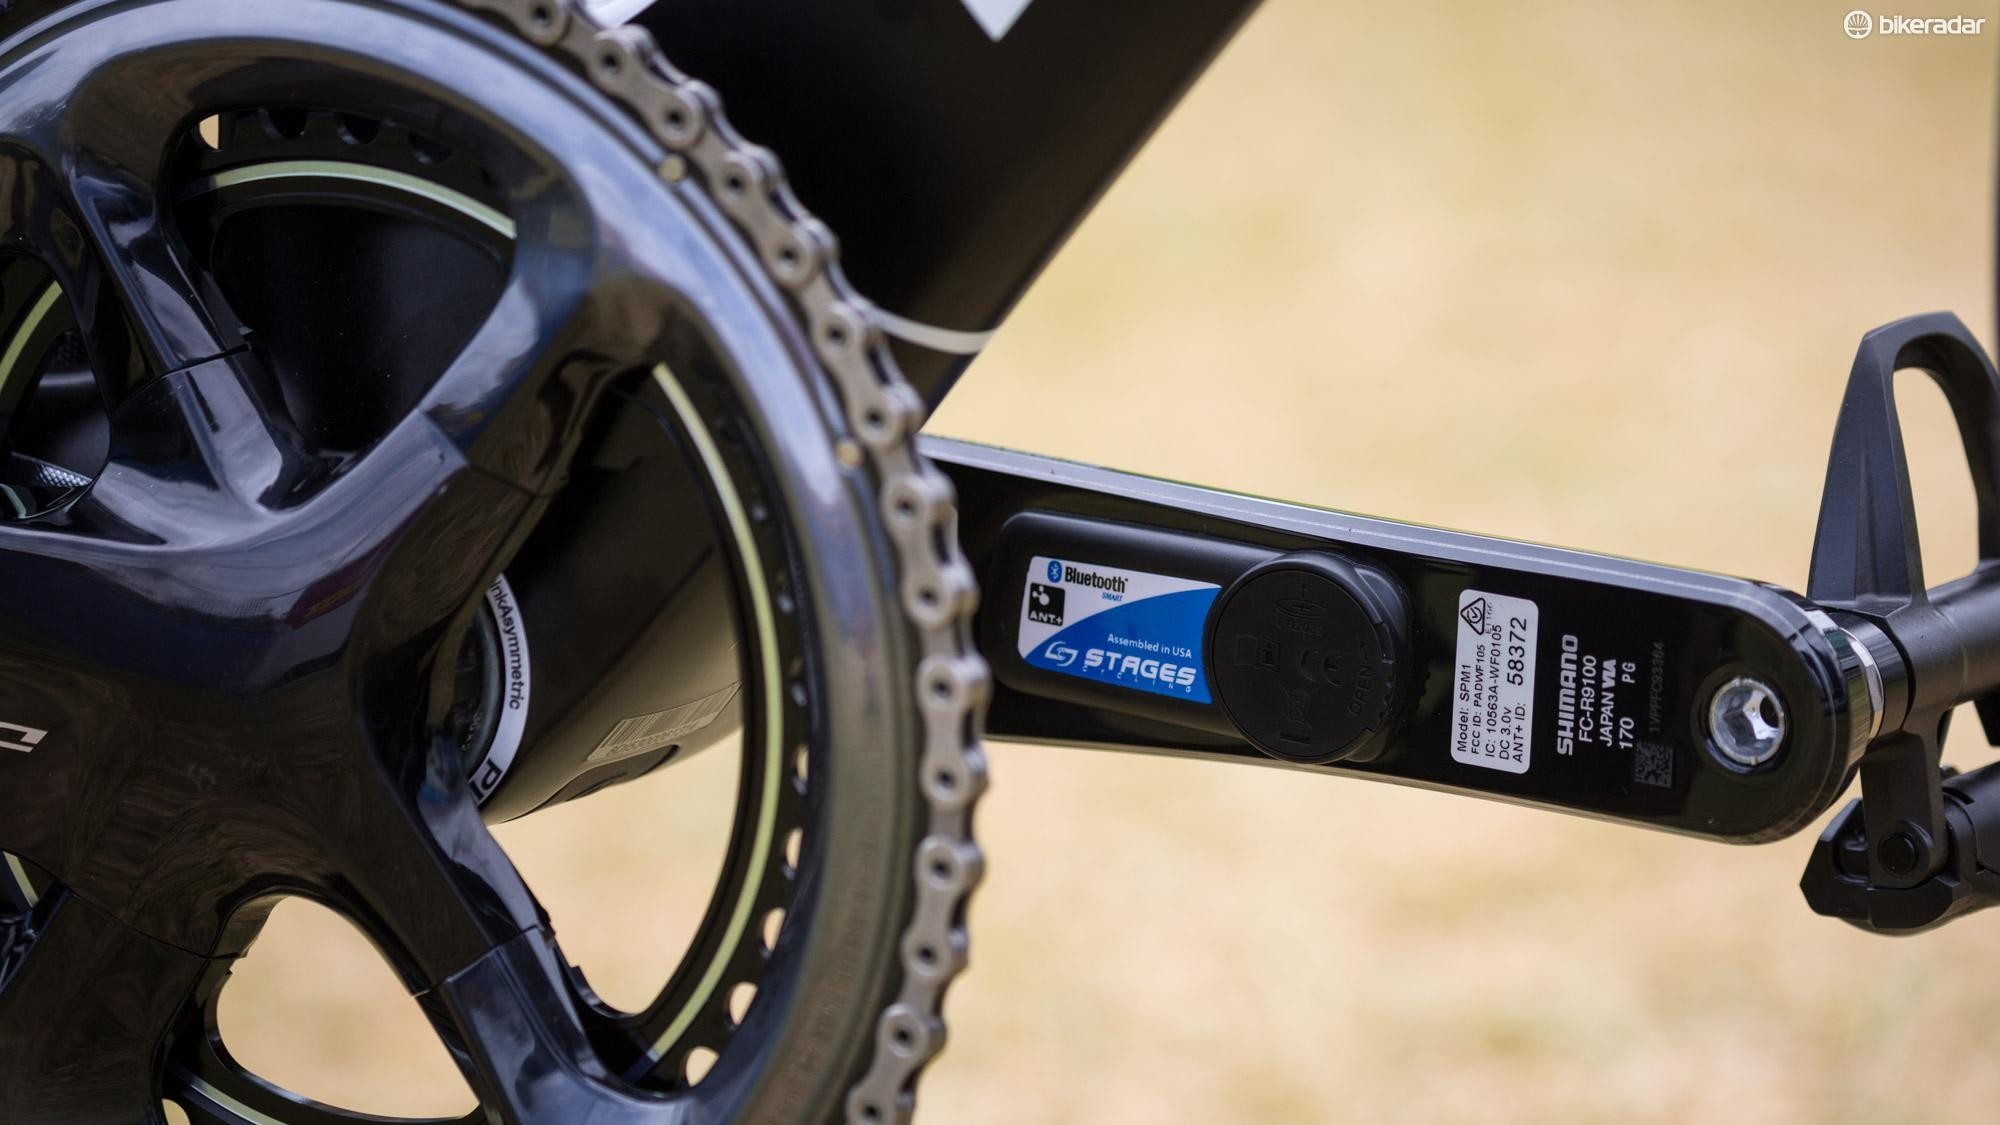 Team Sky have the choice of Stages or Shimano power meters for 2018, but at the Tour Down Under there is one clear favourite